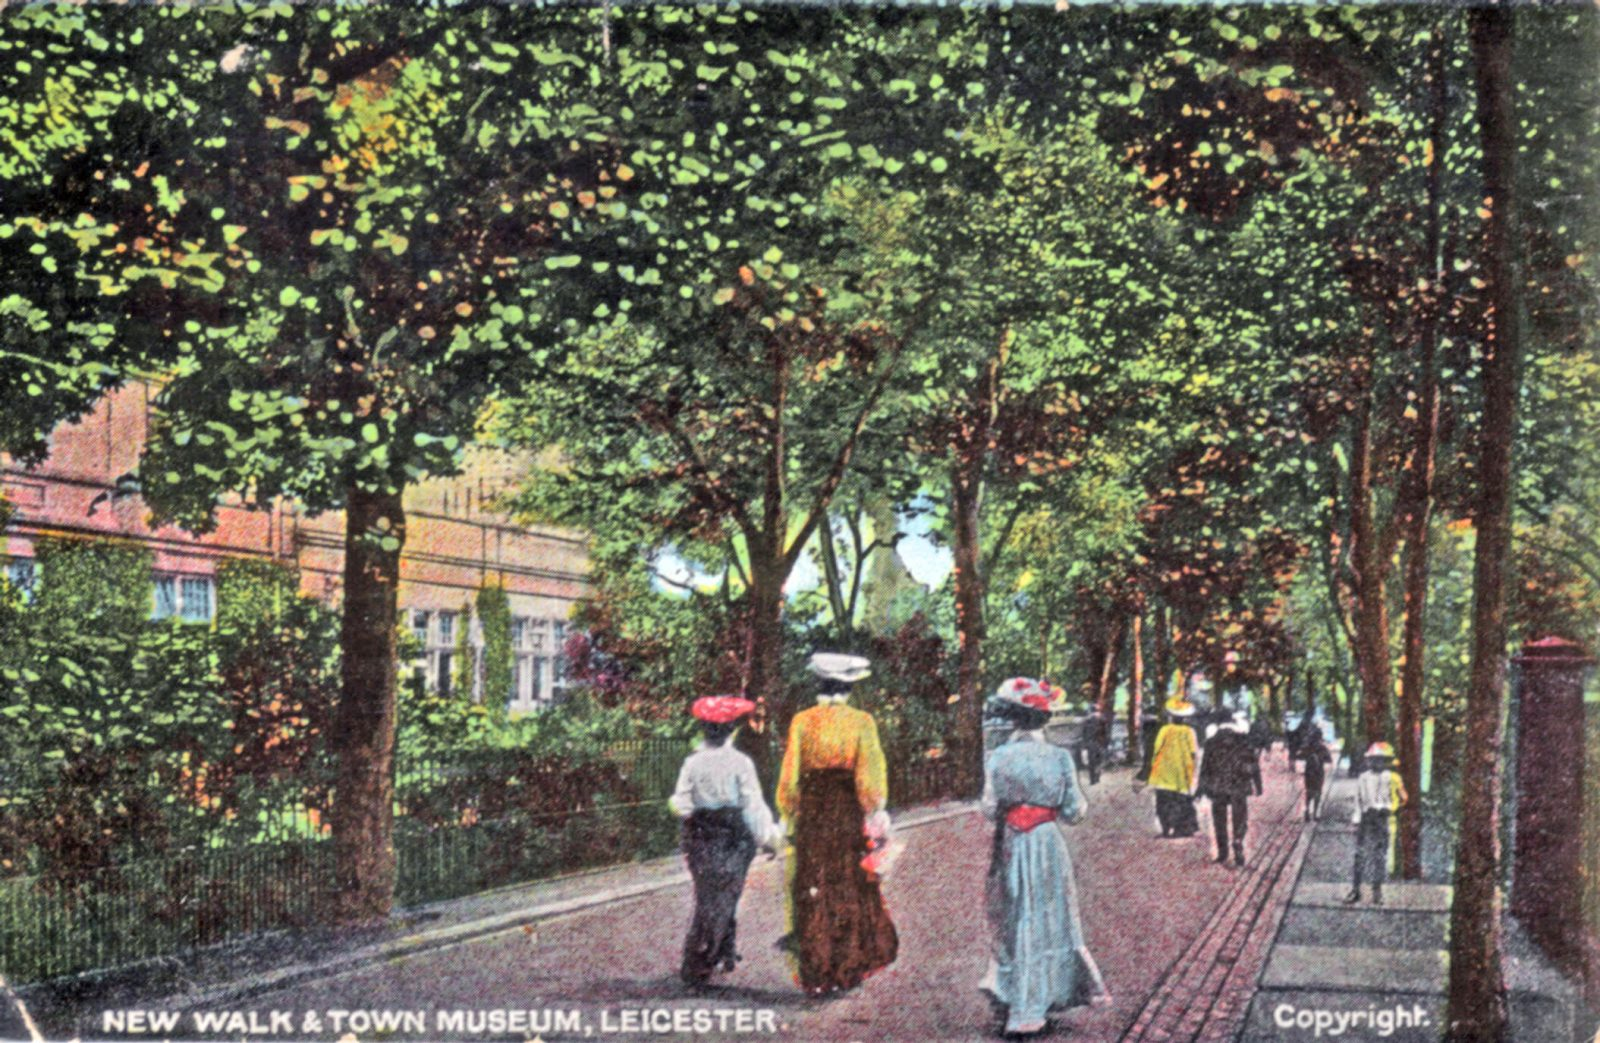 New Walk, Leicester. 1901-1920: People promenading along New Walk with Town Museum in background. Circa 1908. (File:1006)